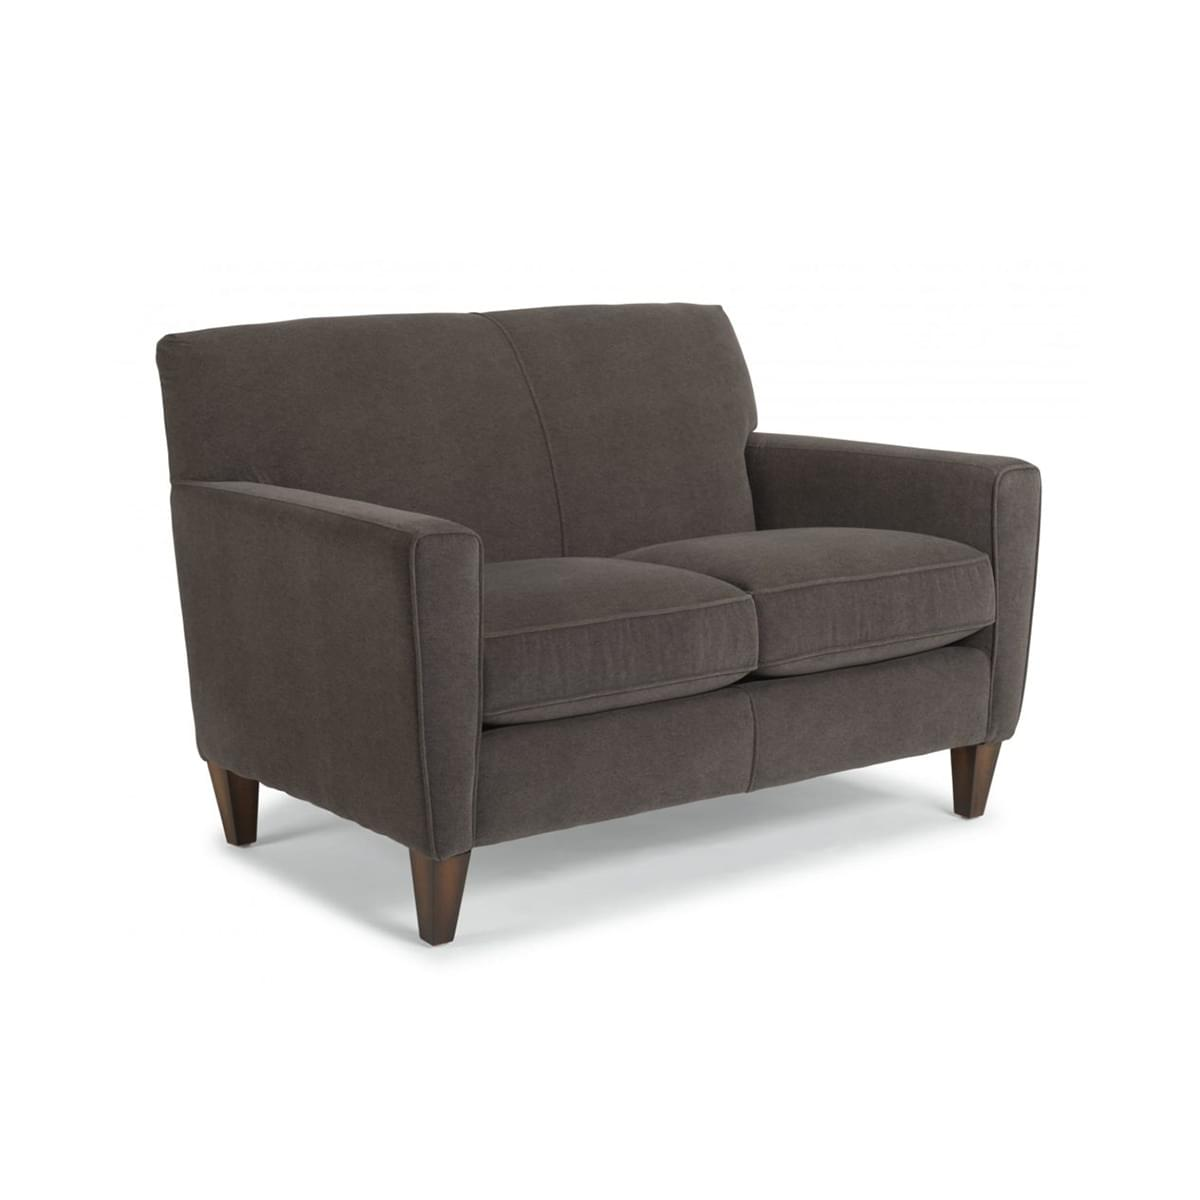 Flexsteel Digby Loveseat at Mums Place Furniture Monterey CA